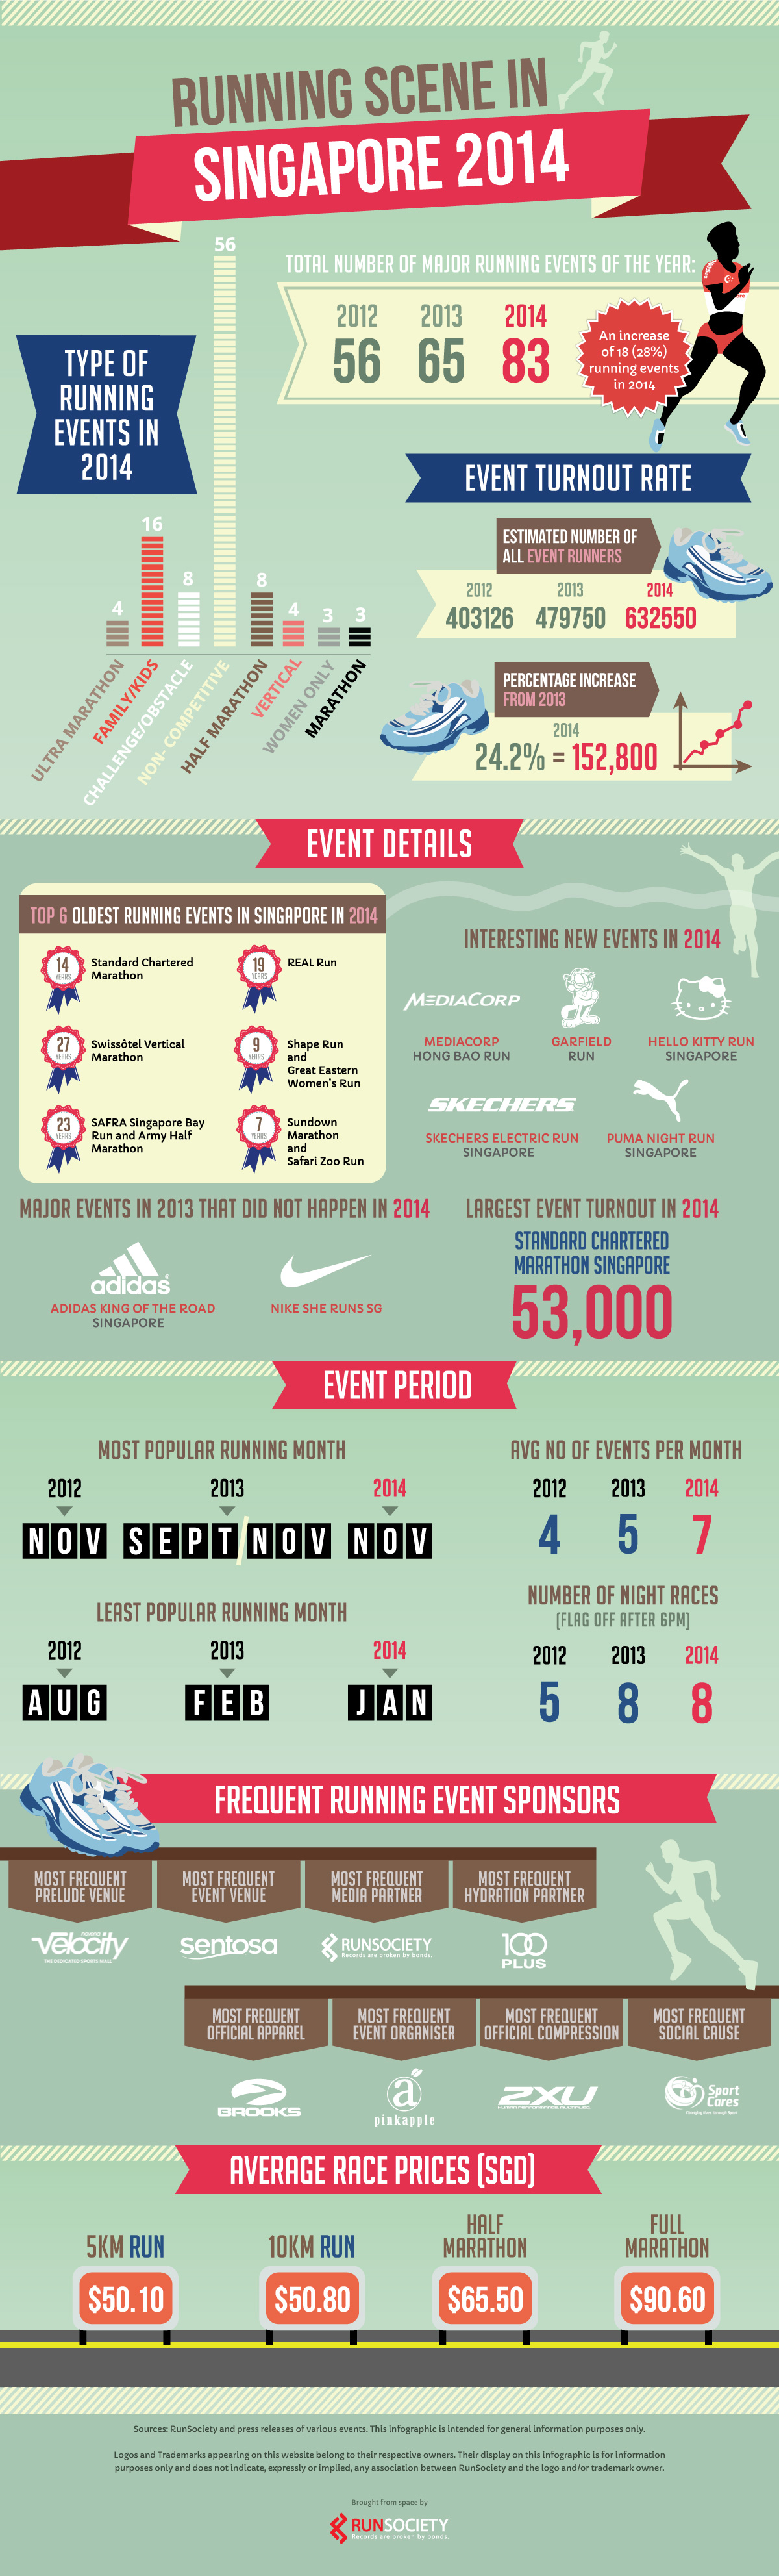 Infographic: Running Events in Singapore 2014